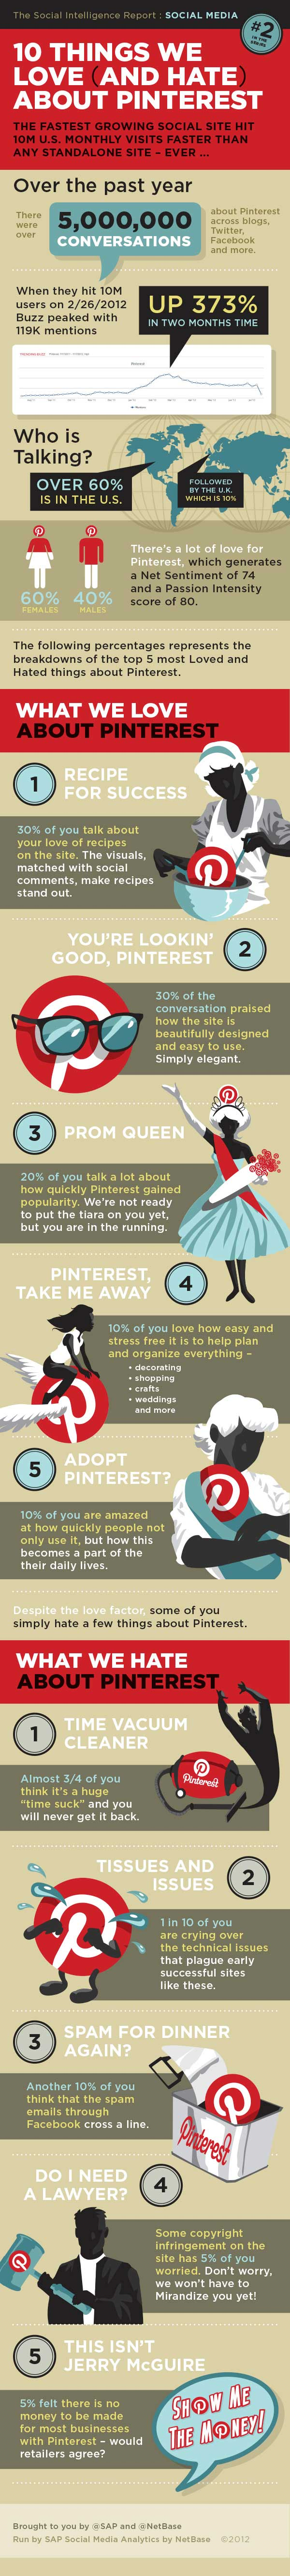 Pinterest Love and Hate